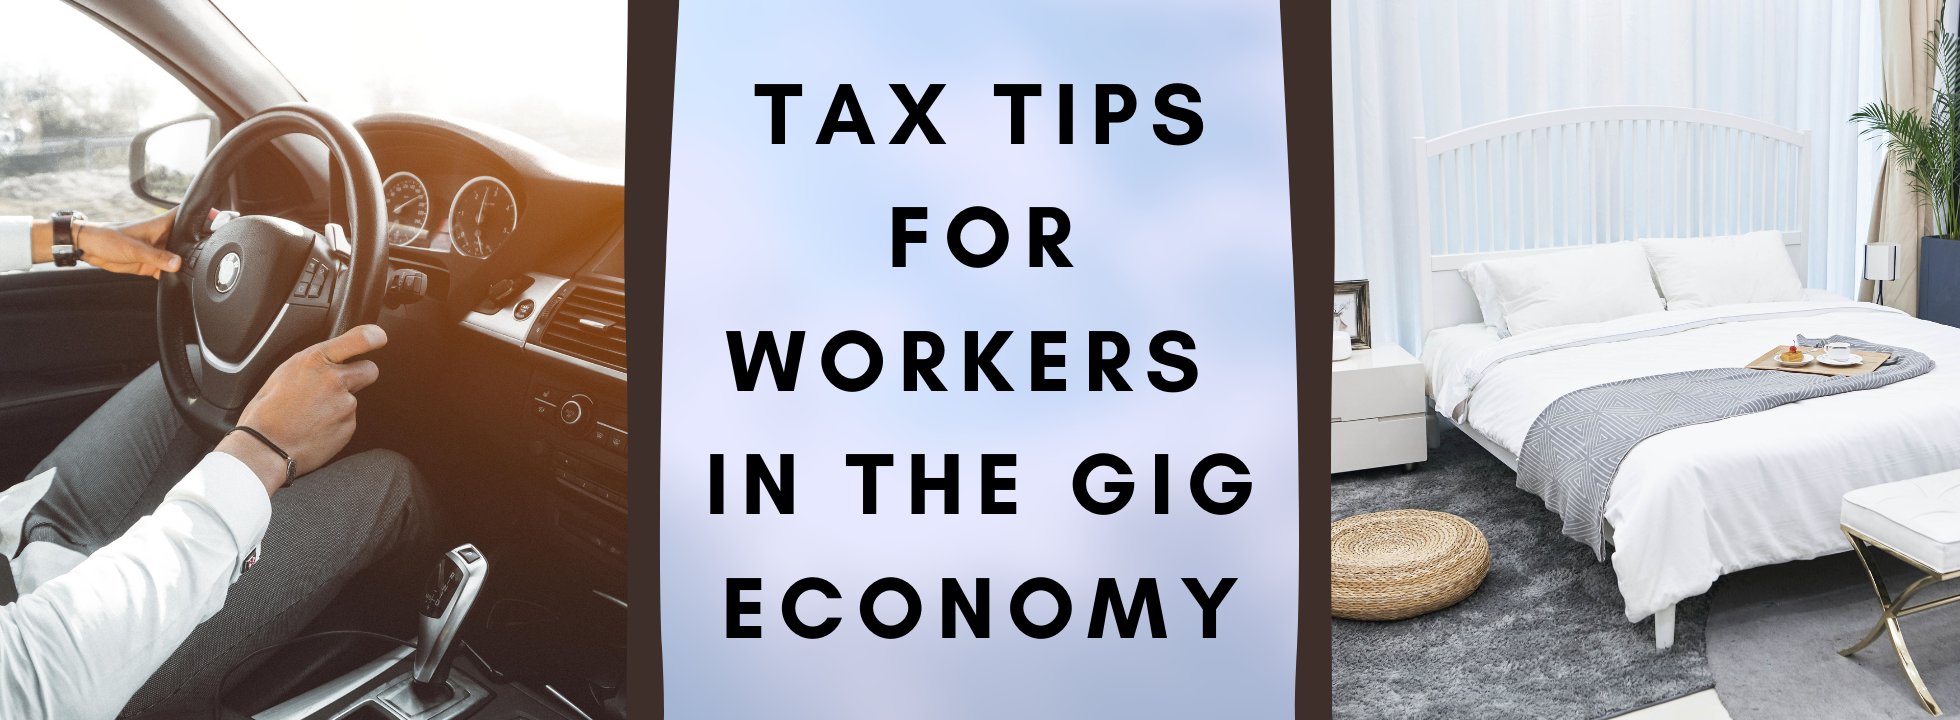 Tax Tips for Workers in the Gig Economy